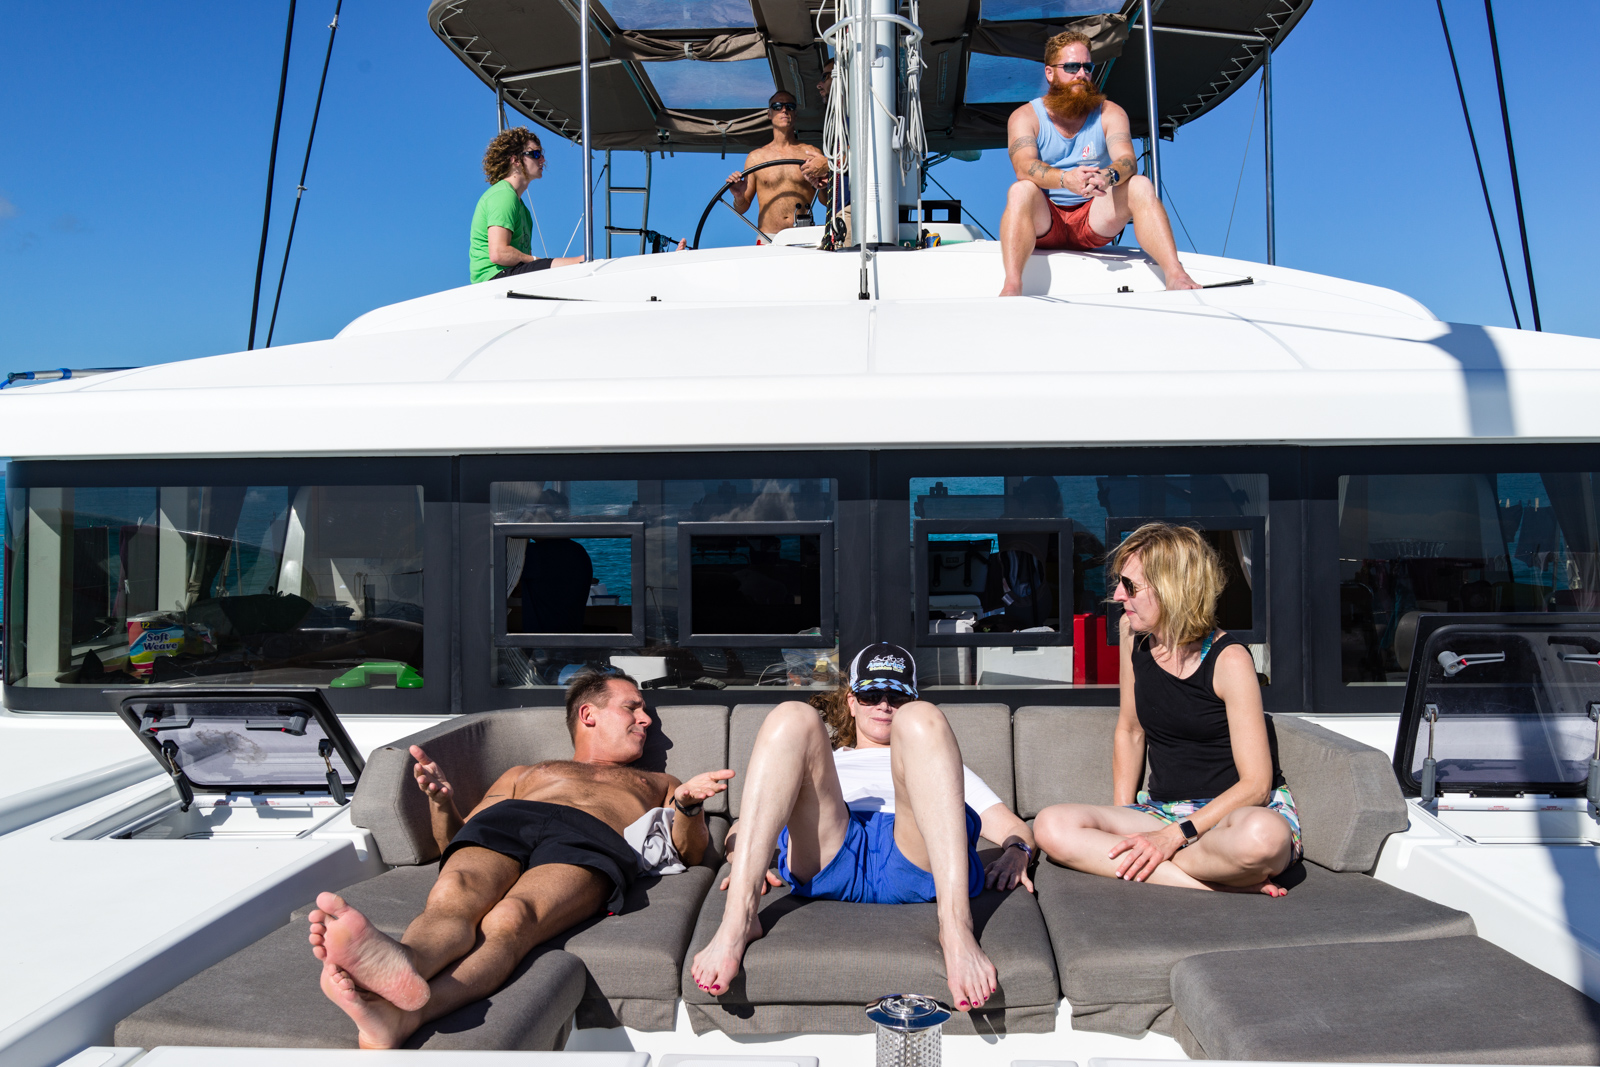 Our gang aboard the Lagoon 52. This will work just right for SwimVacation.